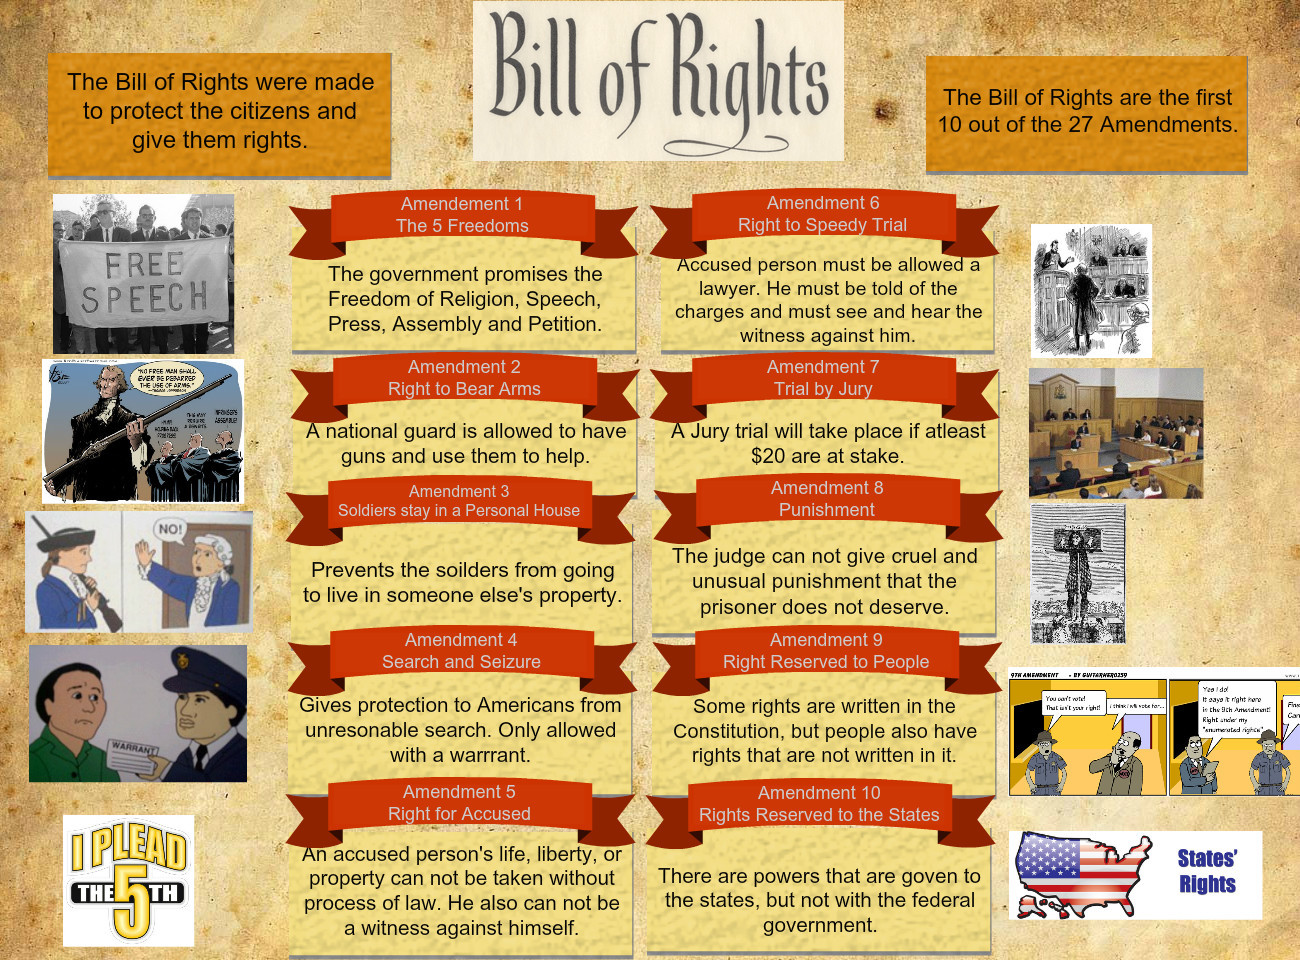 an introduction to the human rights in the united states bill of rights Human rights in the united states: in the united states have often talked about human rights as if they were only the voting rights bill.